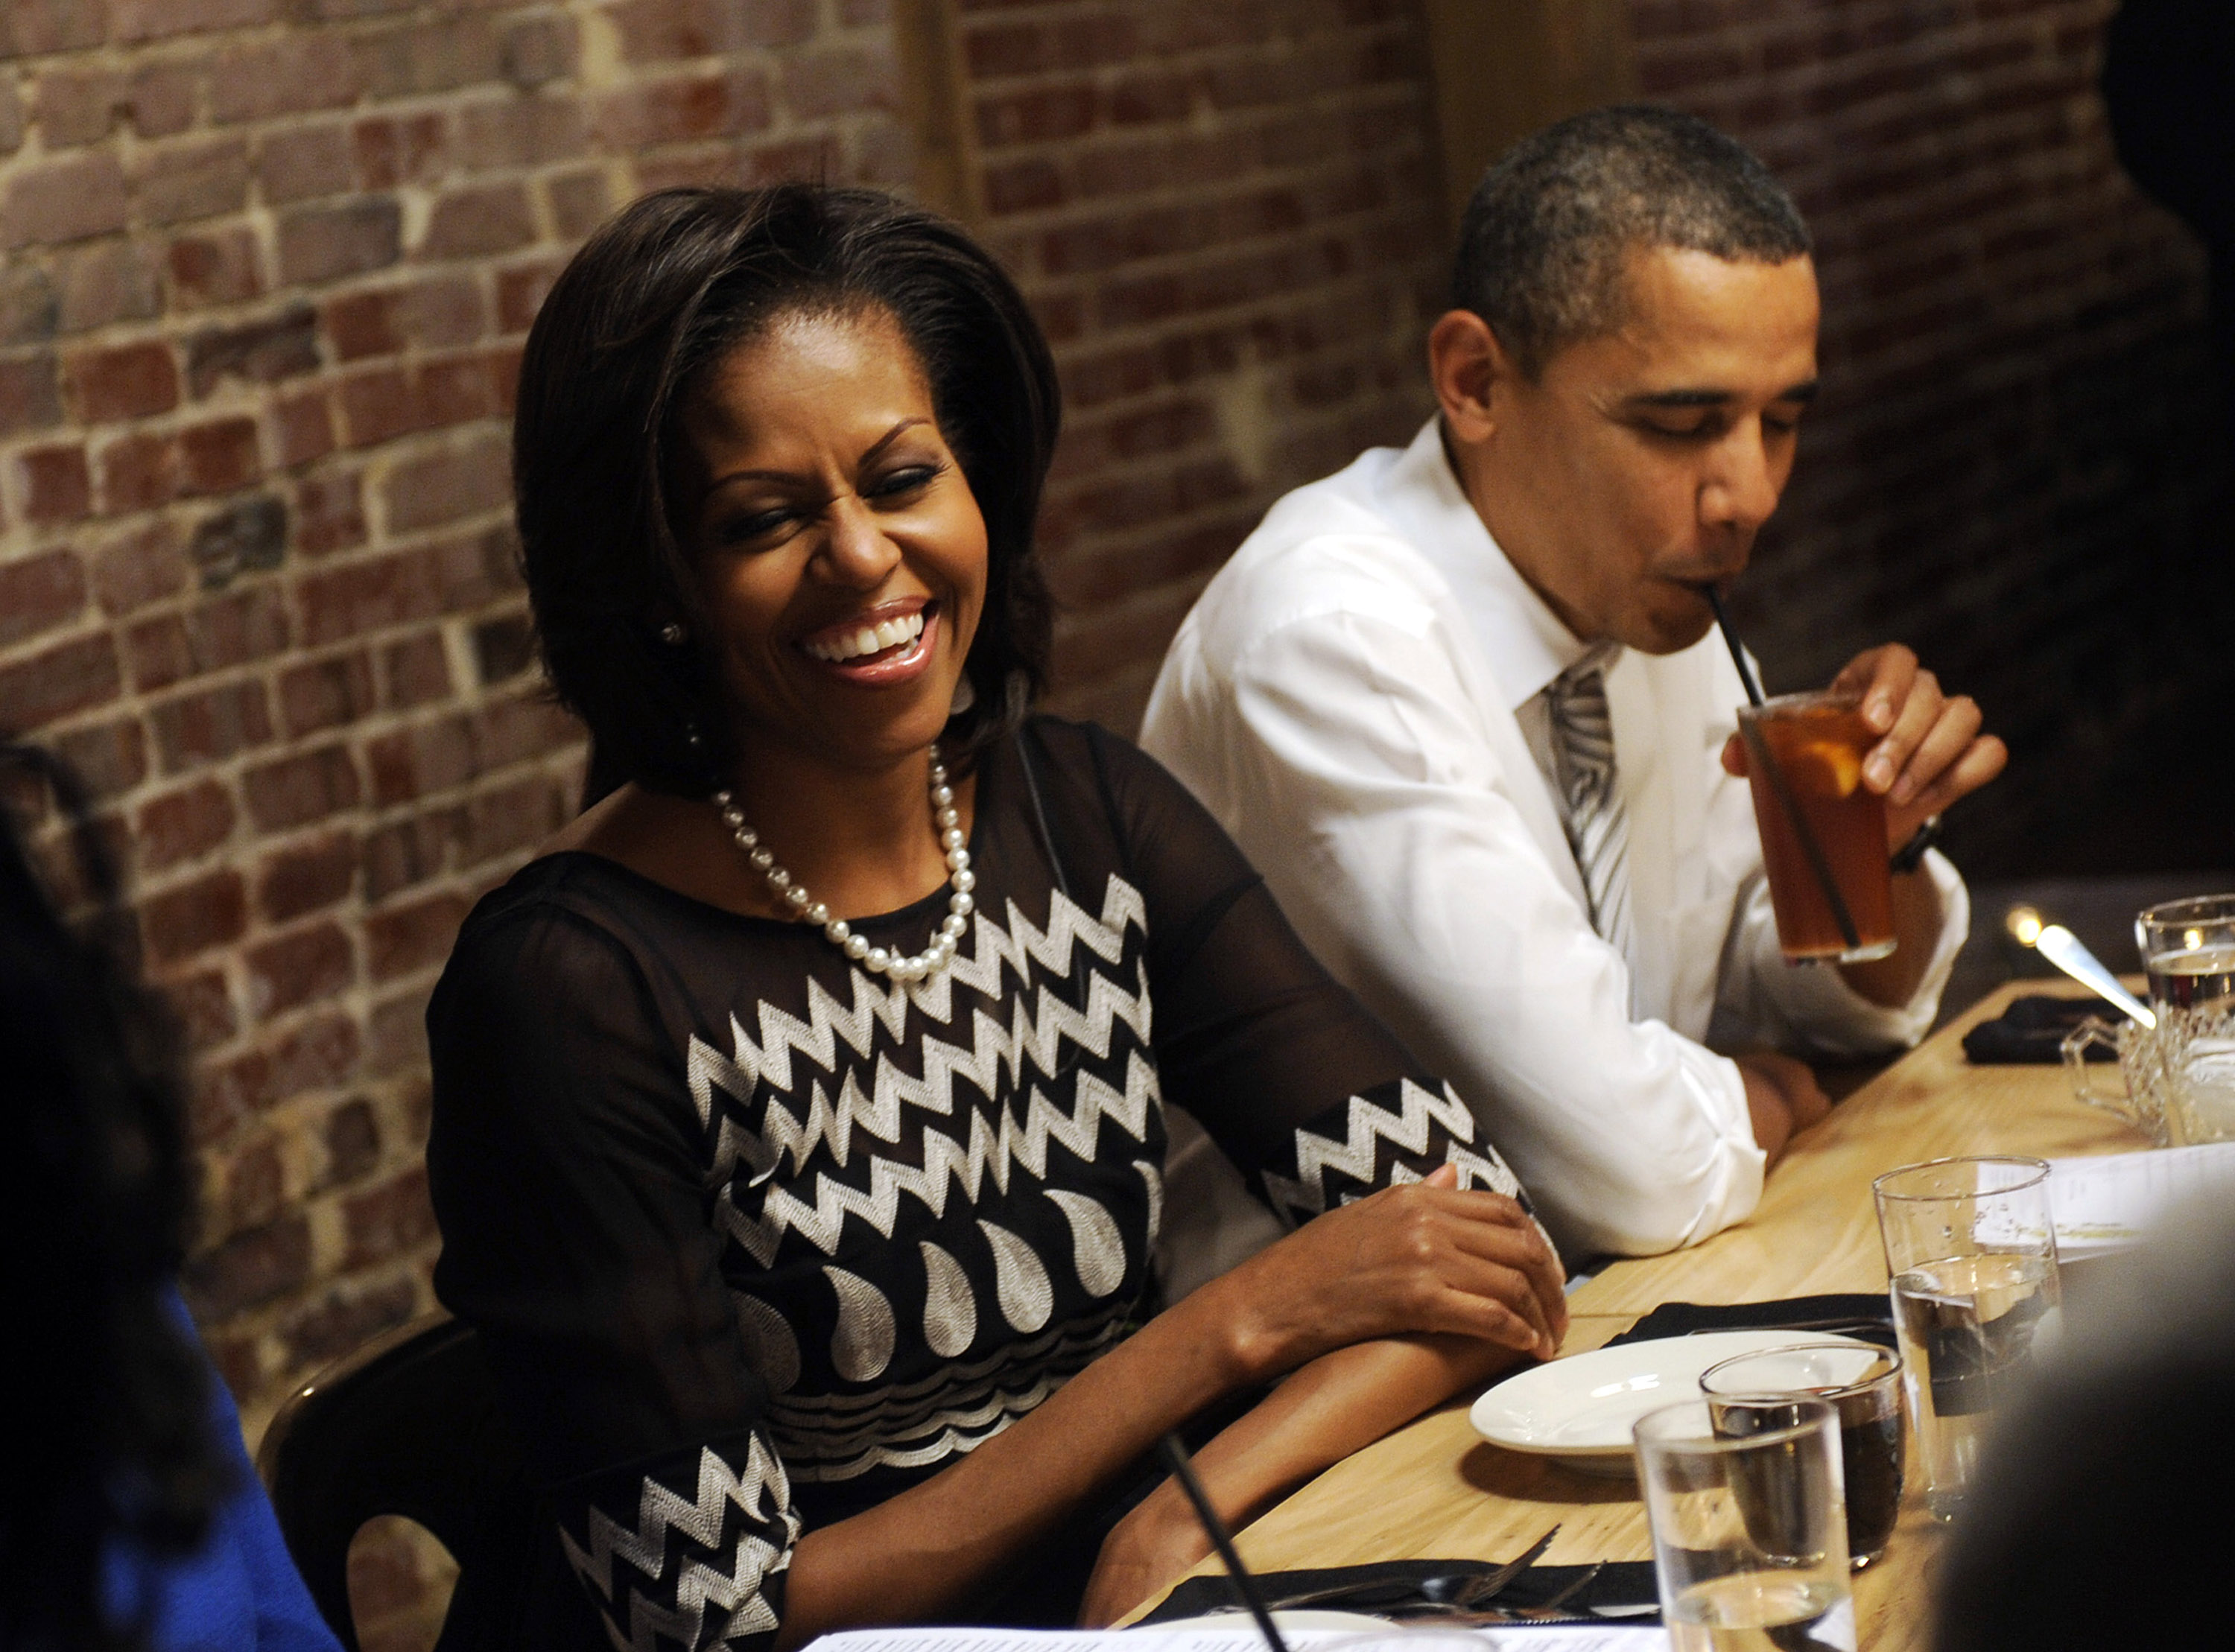 Michelle Obama and Barack Obama at Boundary Road